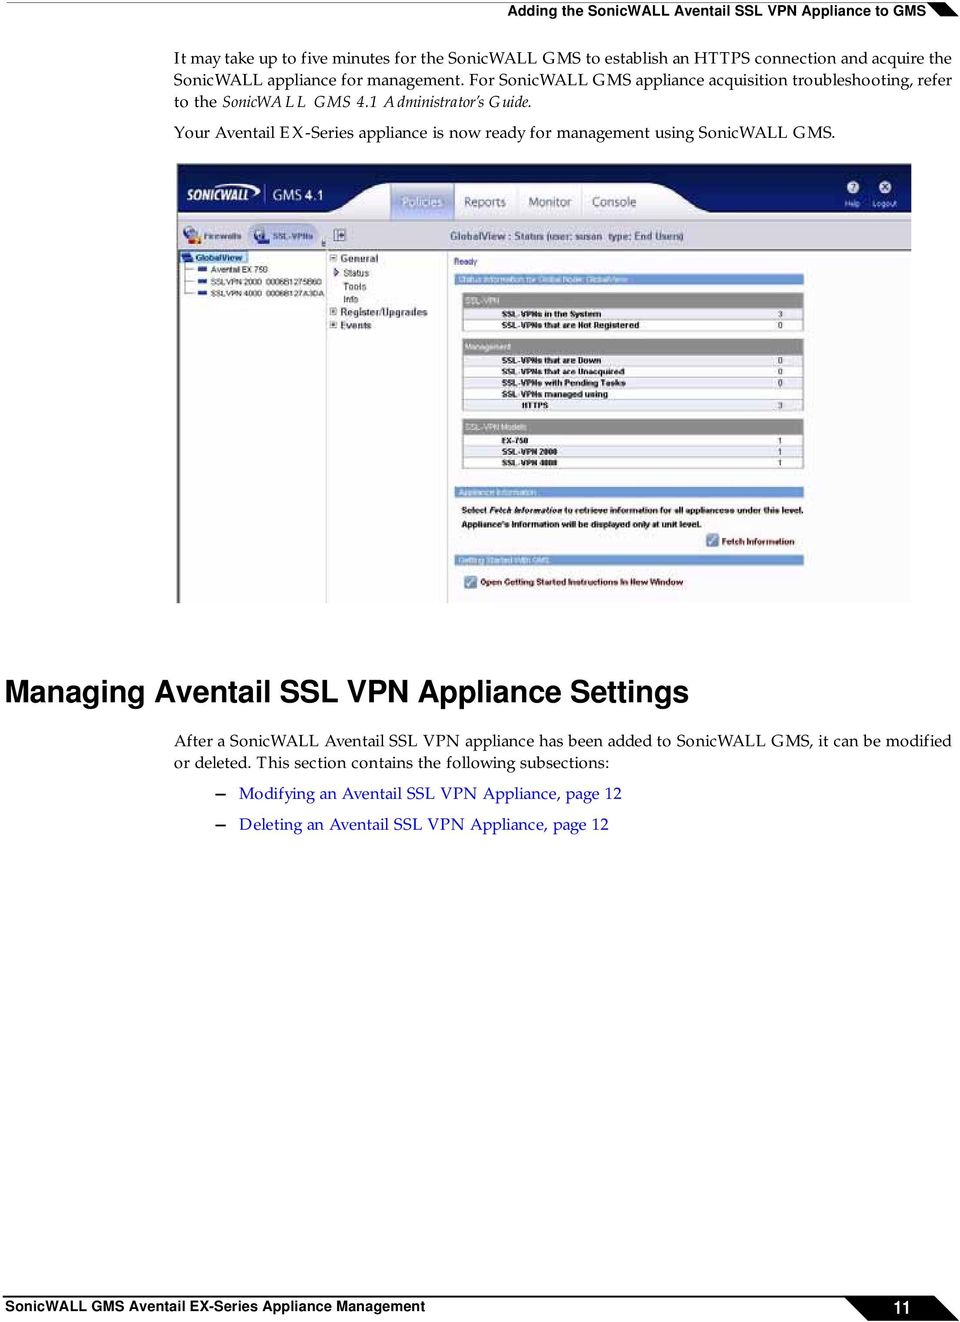 Your Aventail EX-Series appliance is now ready for management using SonicWALL GMS.